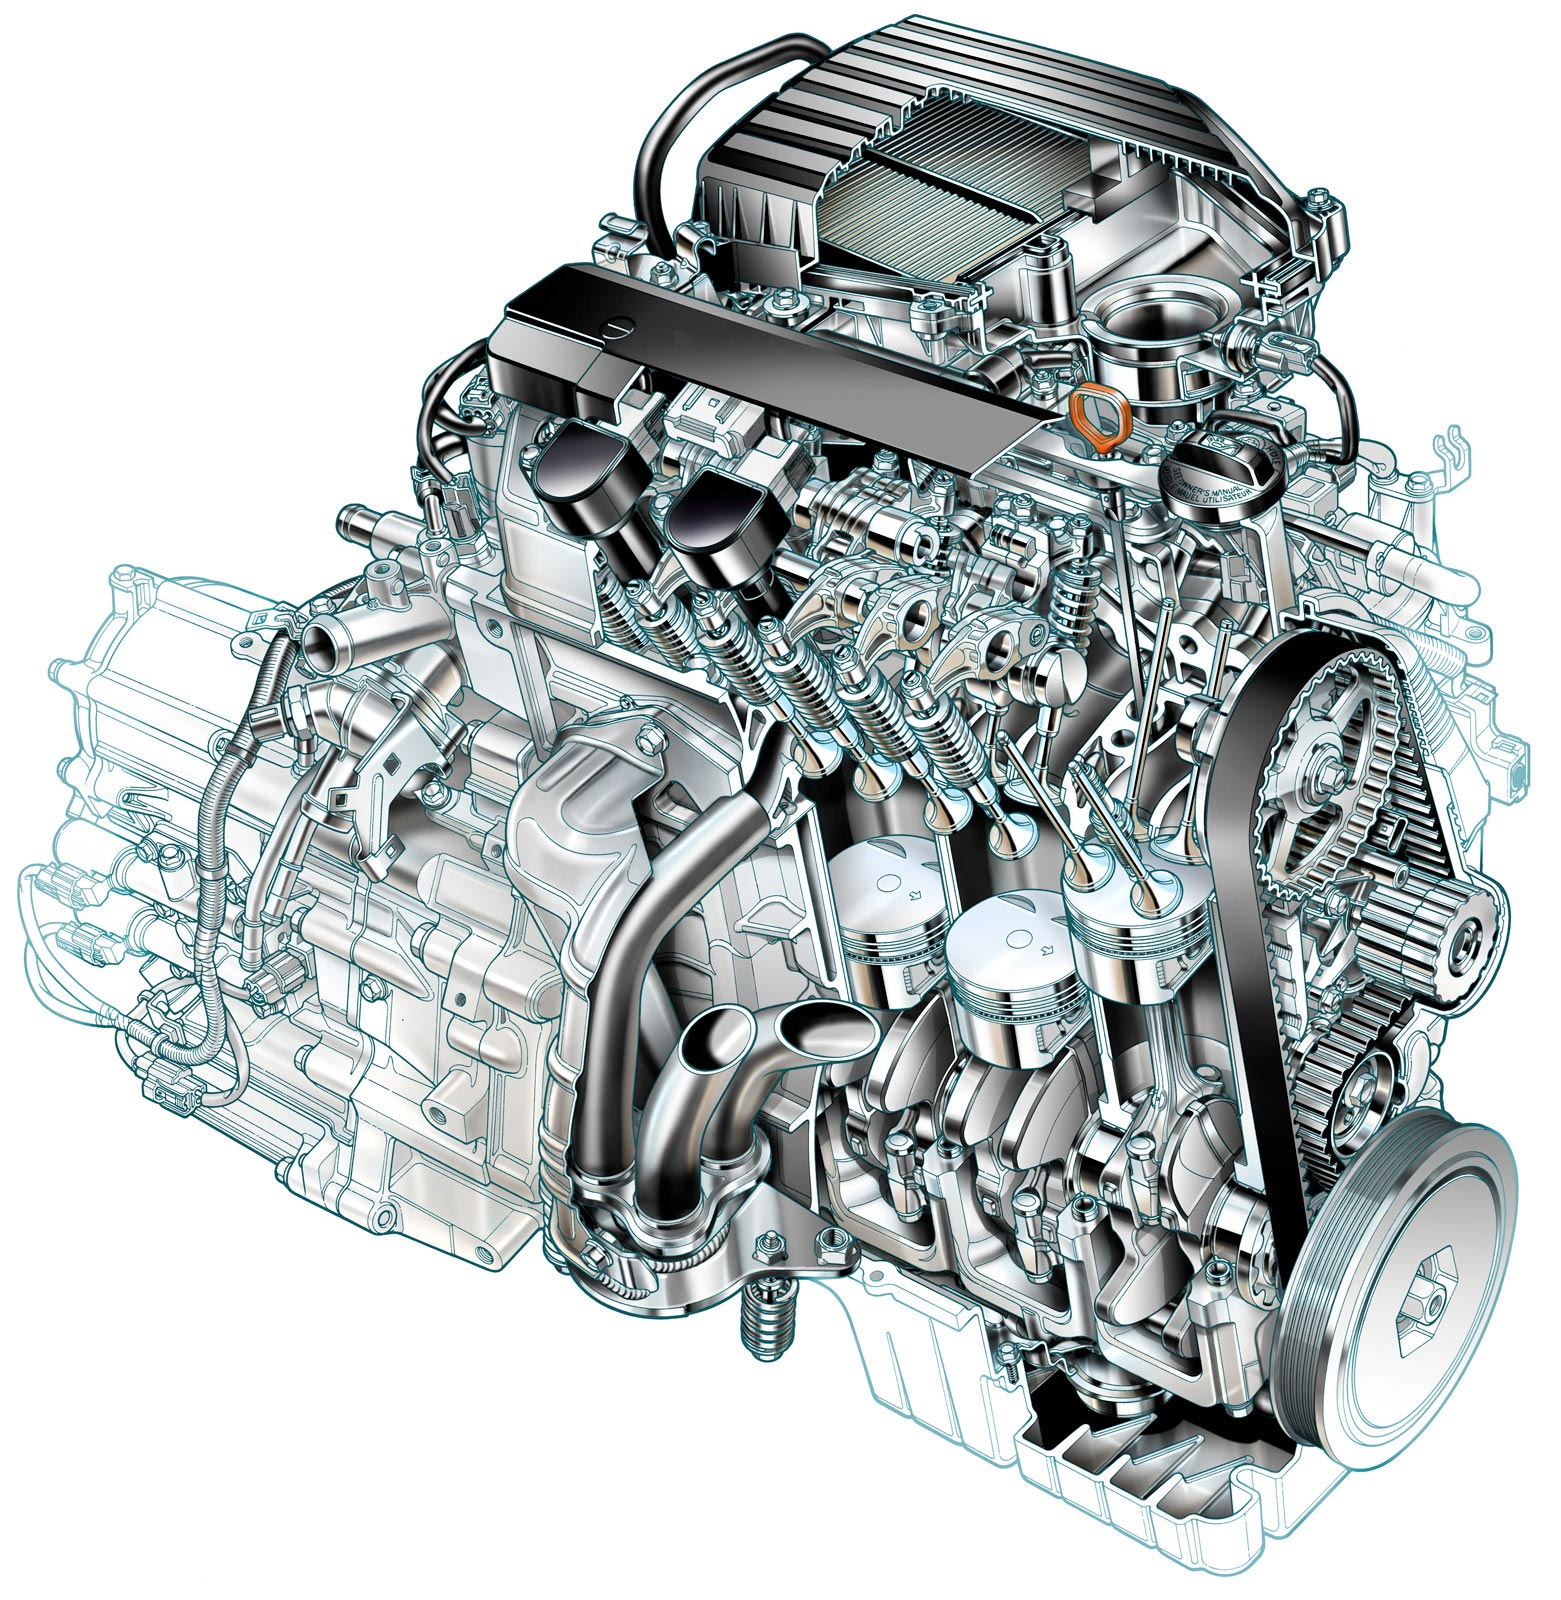 Honda Civic VTEC-E engine cutaway